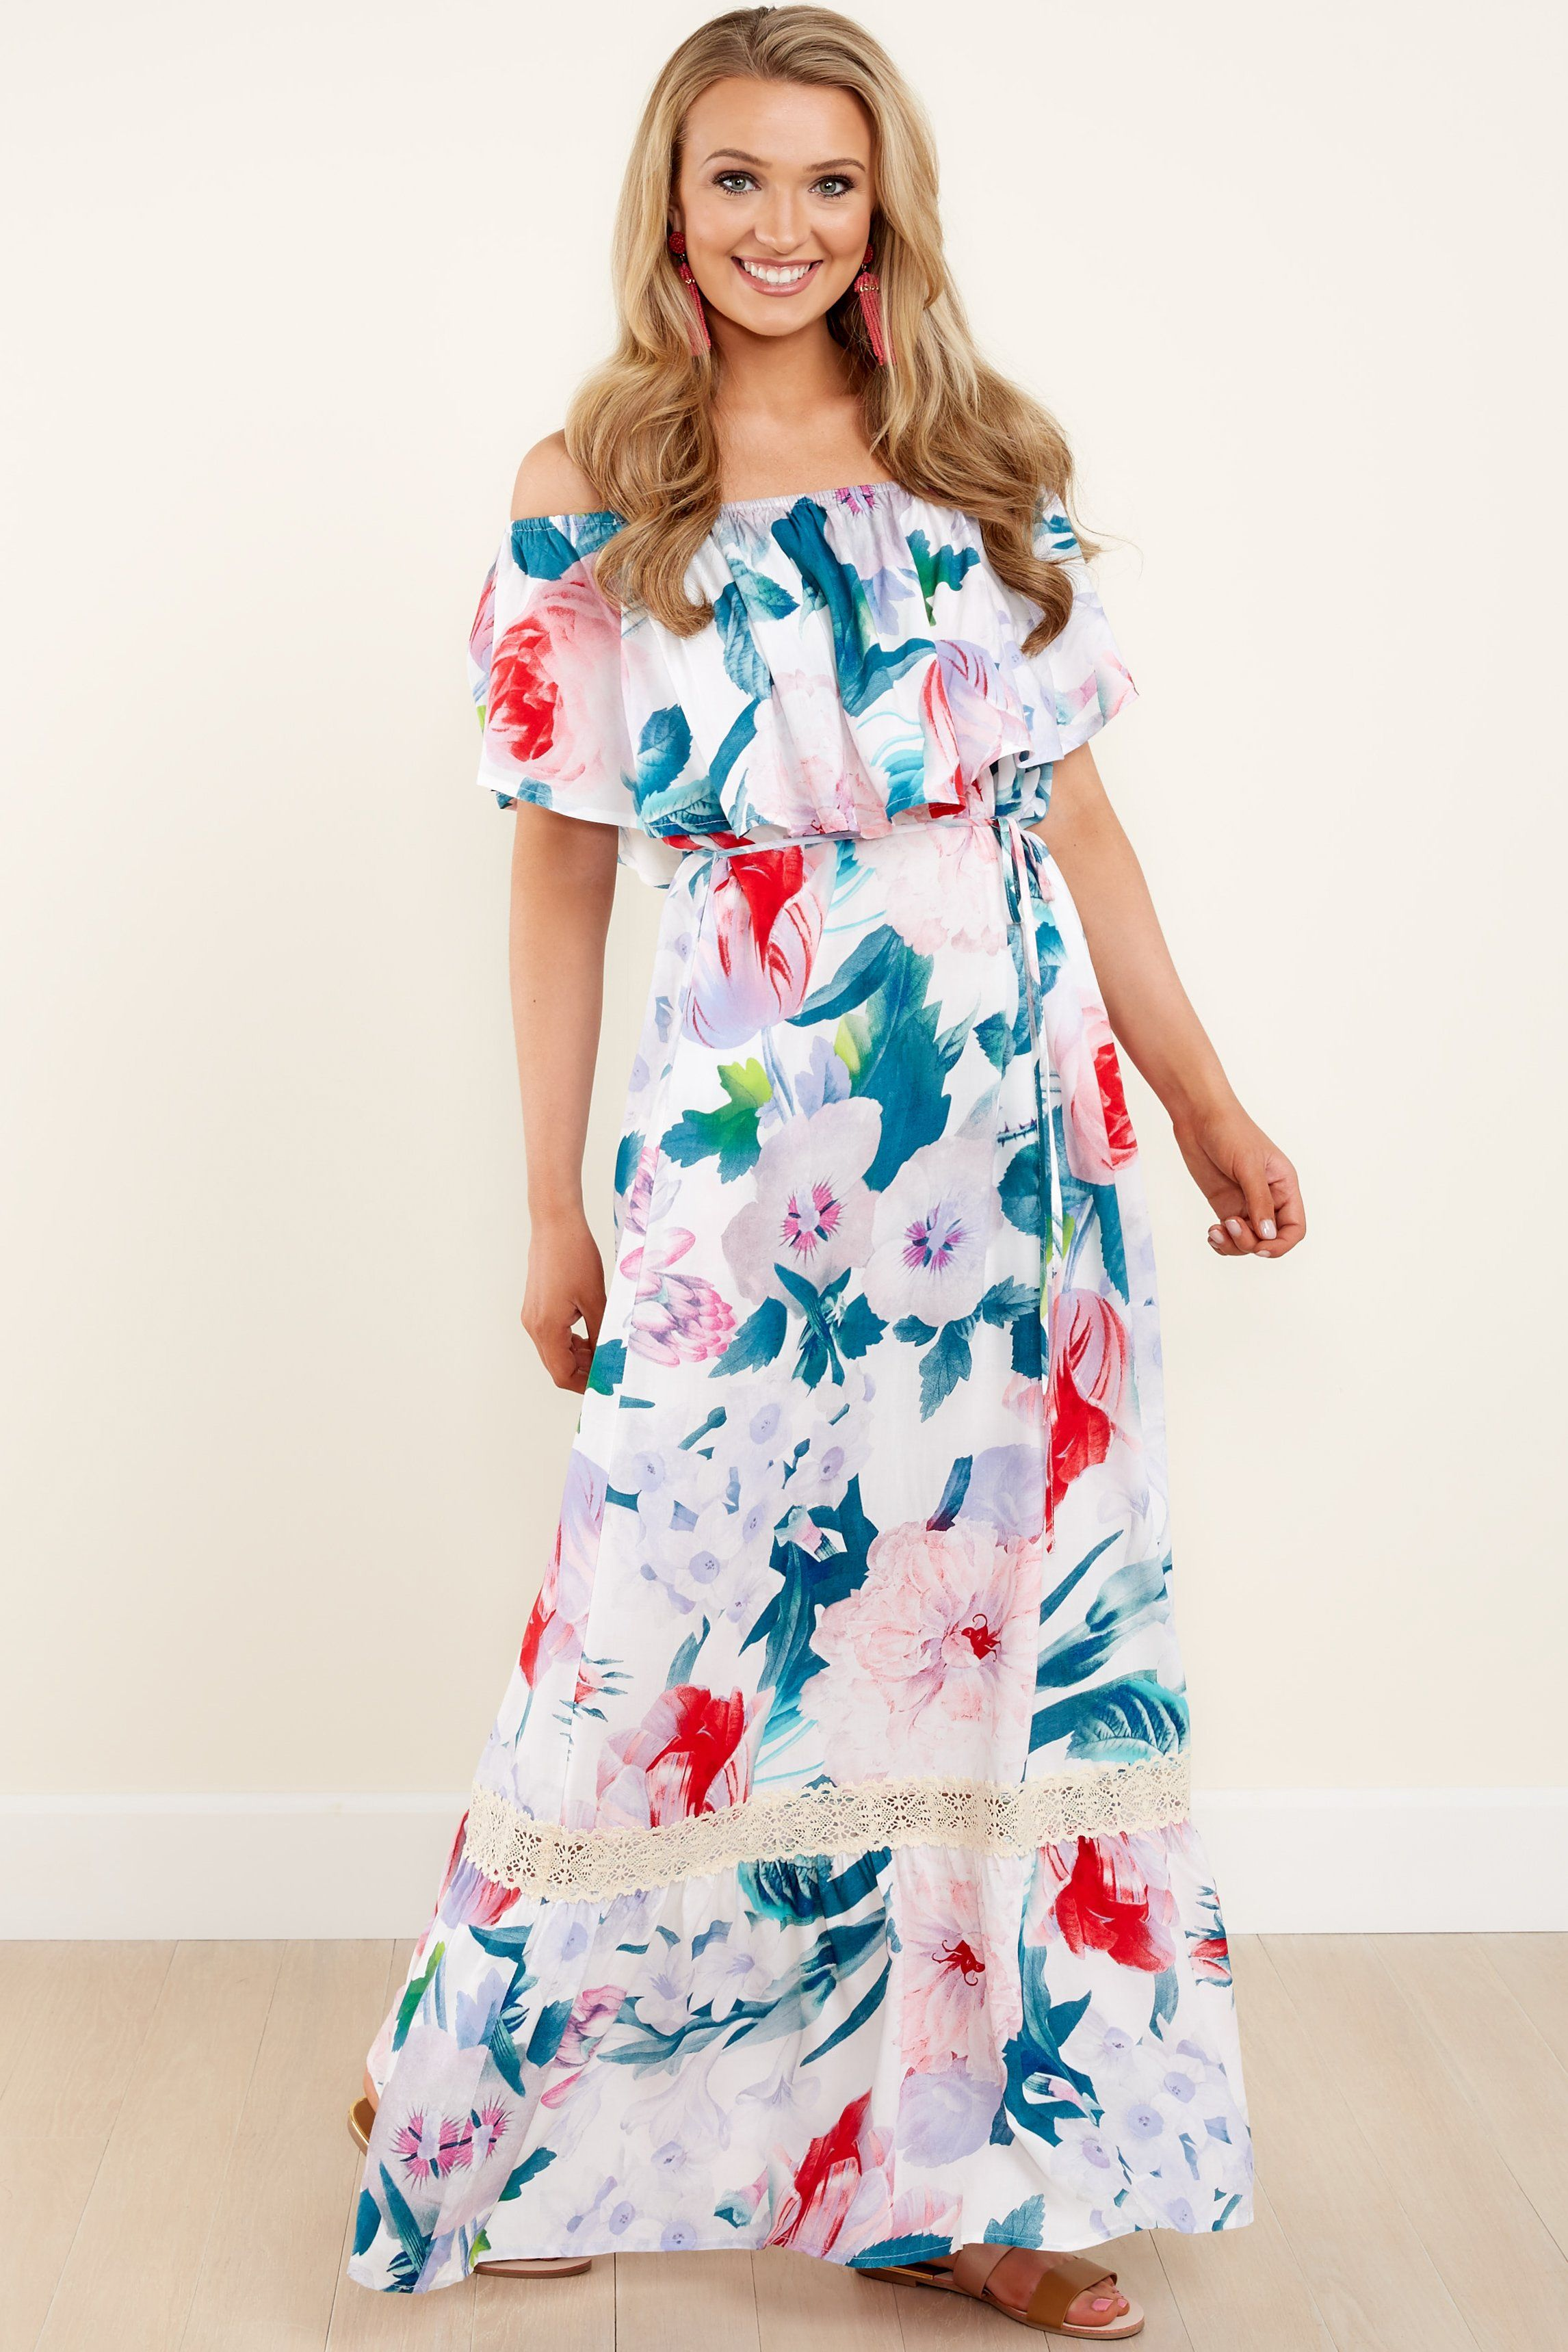 a71285c0808 Pretty Floral Print Dress - Off The Shoulder - Maxi Dress -  42.00 – Red  Dress Boutique